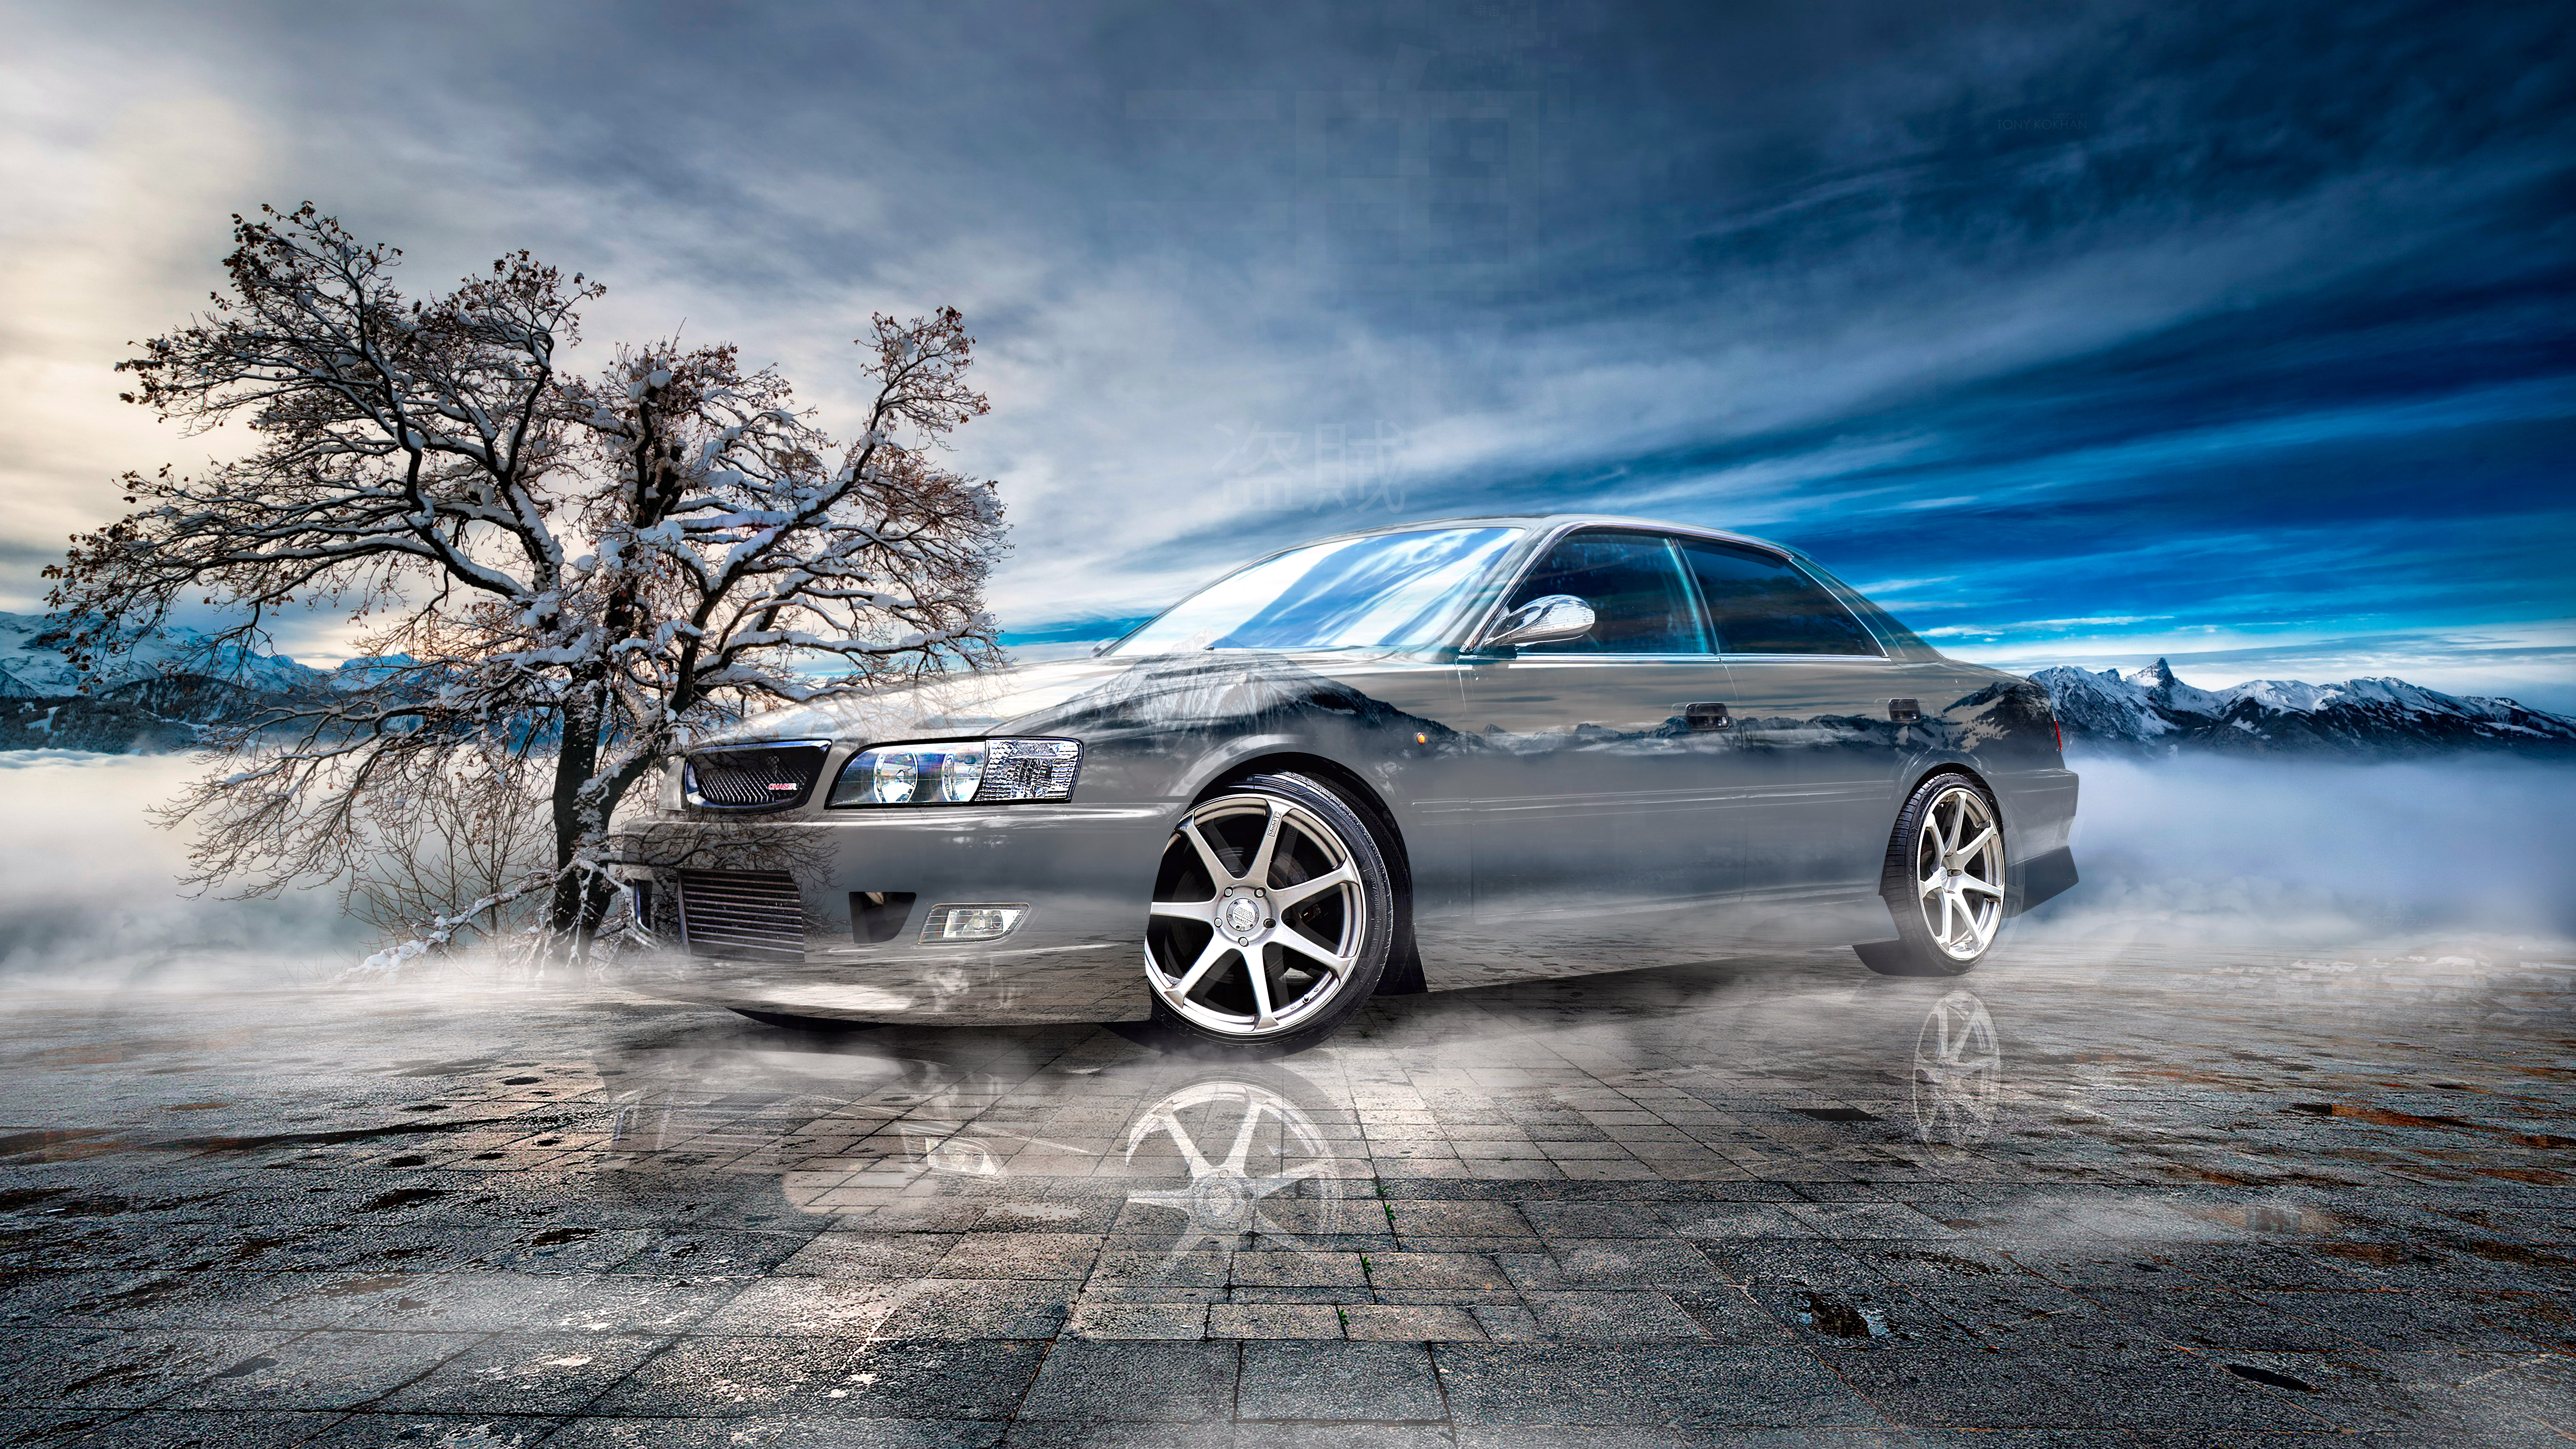 Toyota-Chaser-JZX100-JDM-Tuning-Super-Crystal-Bandit-Soul-Swiss-Alps-Switzerland-Winter-Tree-Art-Car-2021-Multicolors-8K-Wallpapers-by-Tony-Kokhan-www.el-tony.com-image